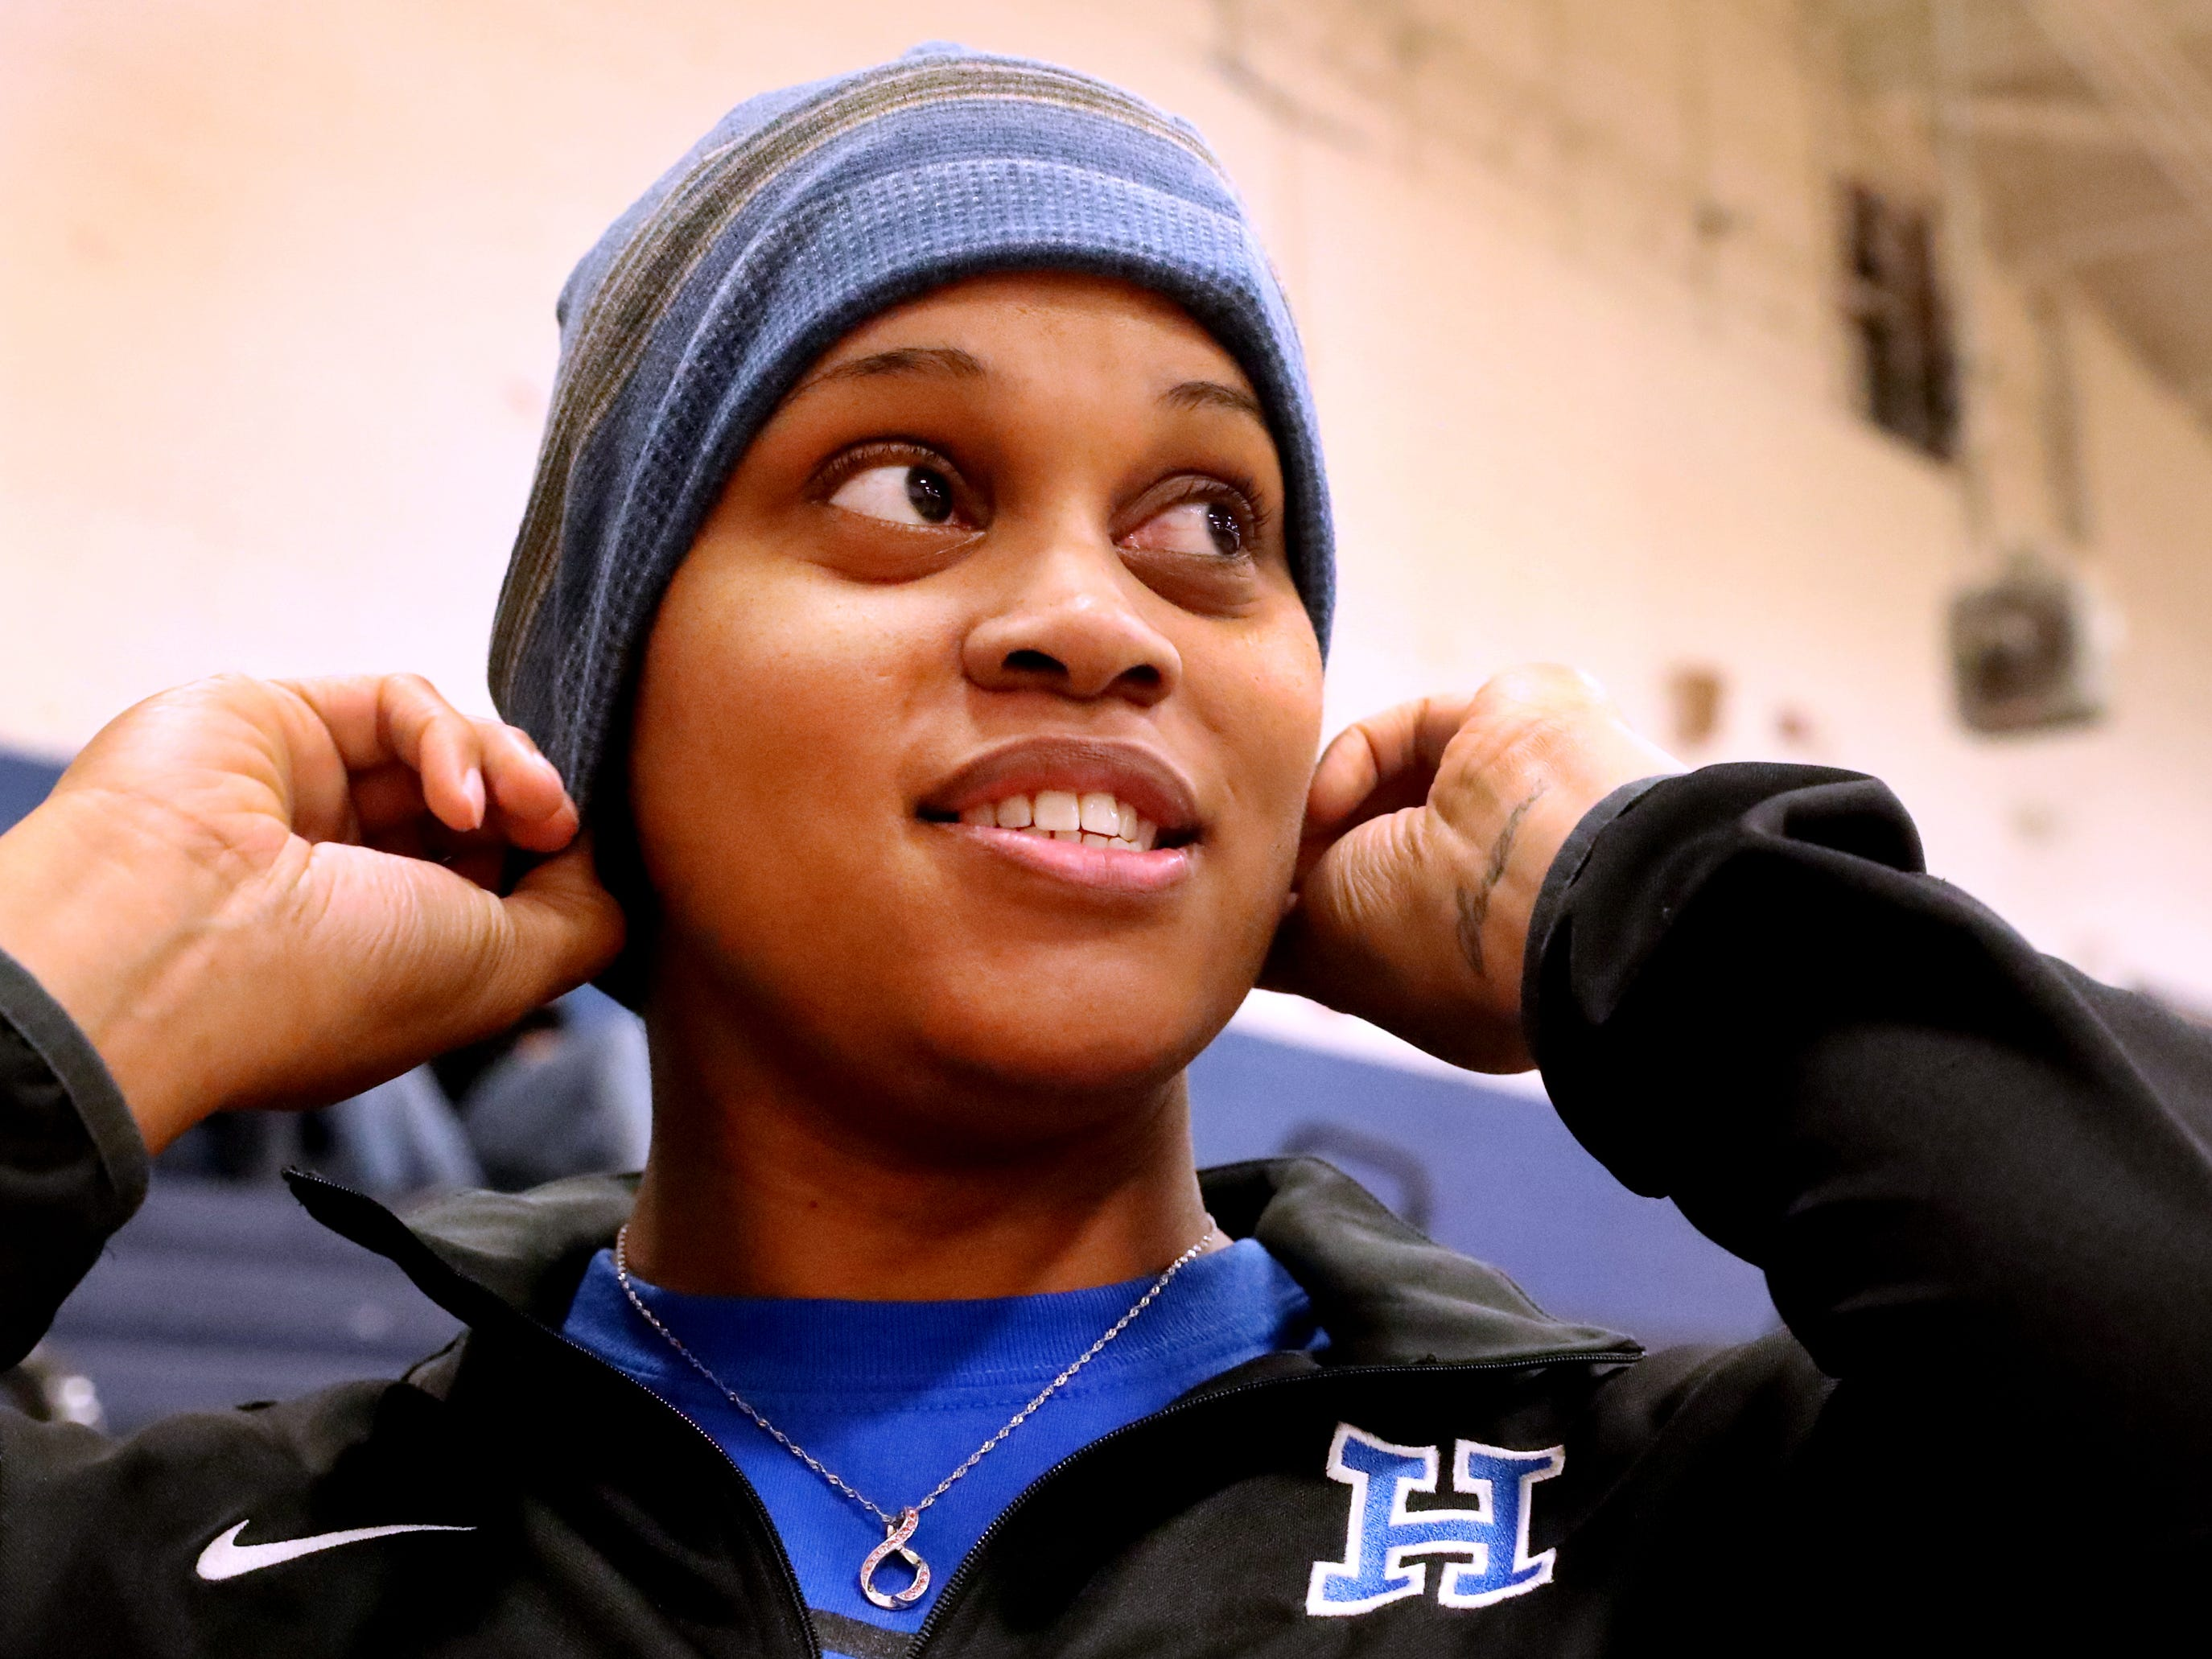 Huntland middle school basketball coach Tia Stovall puts on knit cap to cover her bald head before braving the cold after practice on Tuesday, Nov. 13, 2018. Stovall who is currently battling breast cancer said she sometimes where it in the gym as well because she gets cold easily due to the chemo.